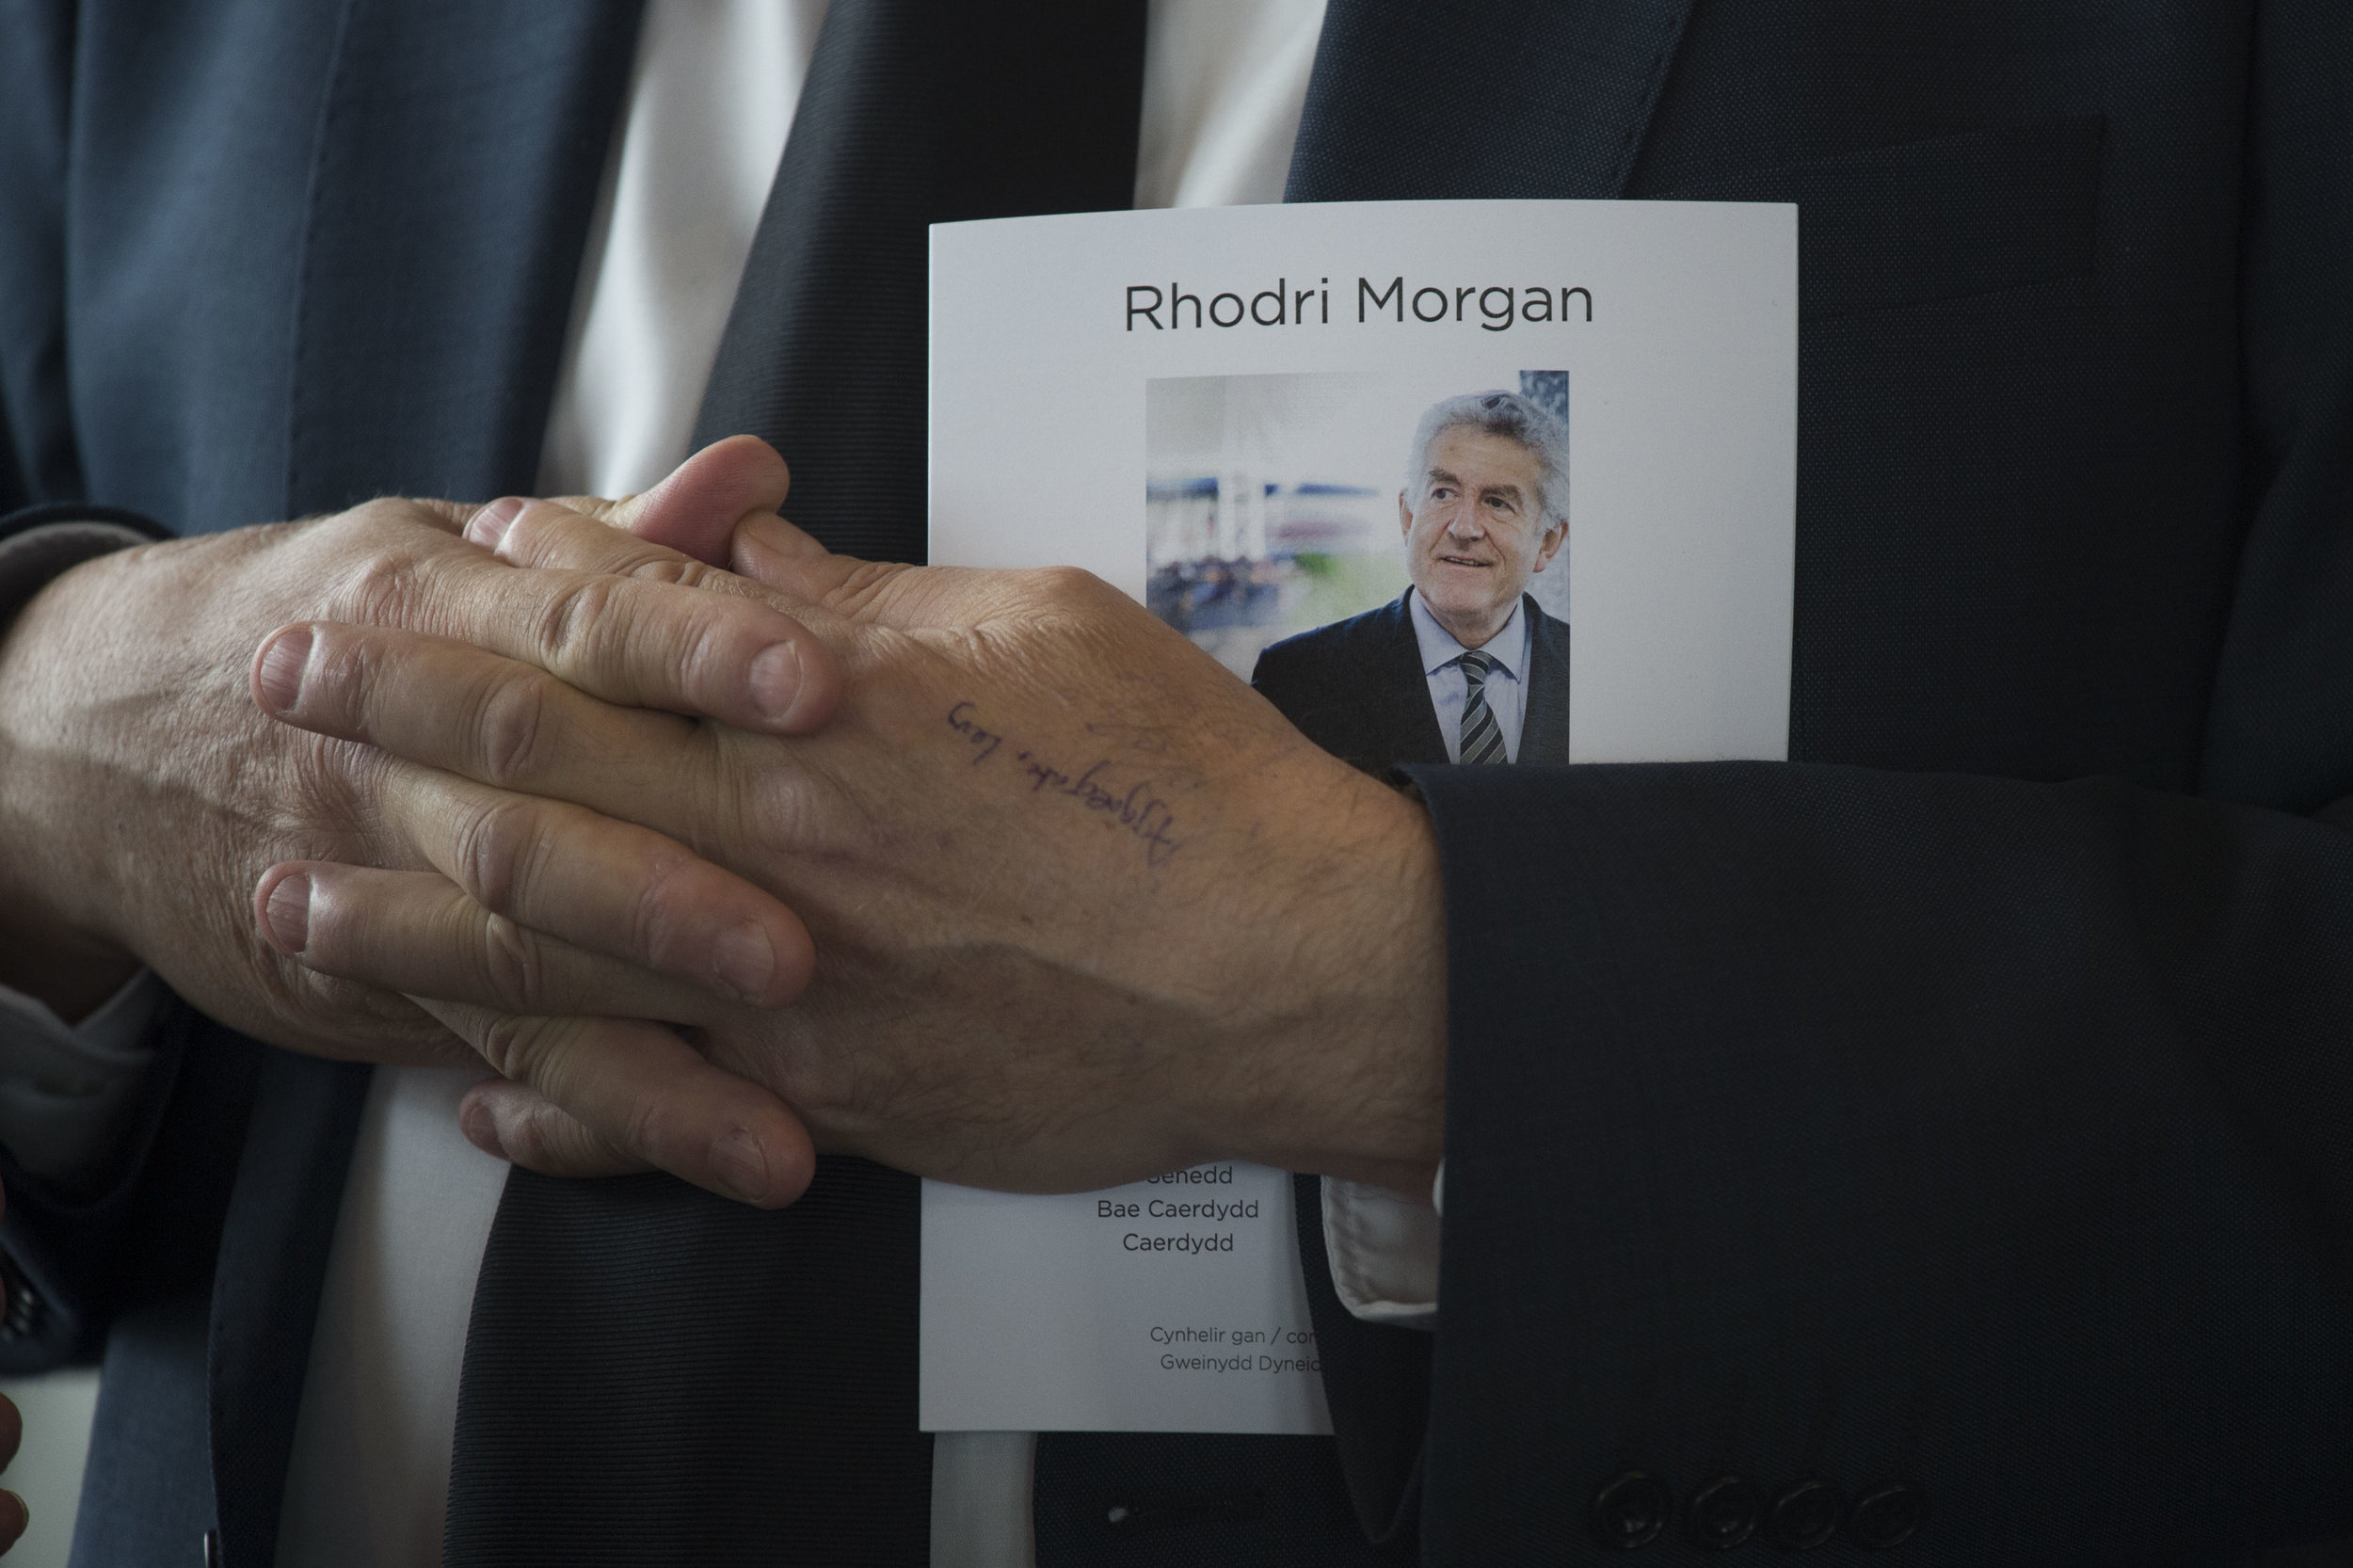 CARDIFF, WALES - MAY 31: An order of service is seen during the funeral of former First Minister of Wales Rhodri Morgan at the Senedd in Cardiff Bay on May 31, 2017 in Cardiff, Wales. Rhodri Morgan was Wales' inaugural First Minister and the Leader of Welsh Labour from 2000 to 2009. He died aged 77 on May 17, 2017. (Photo by Matthew Horwood/Getty Images)